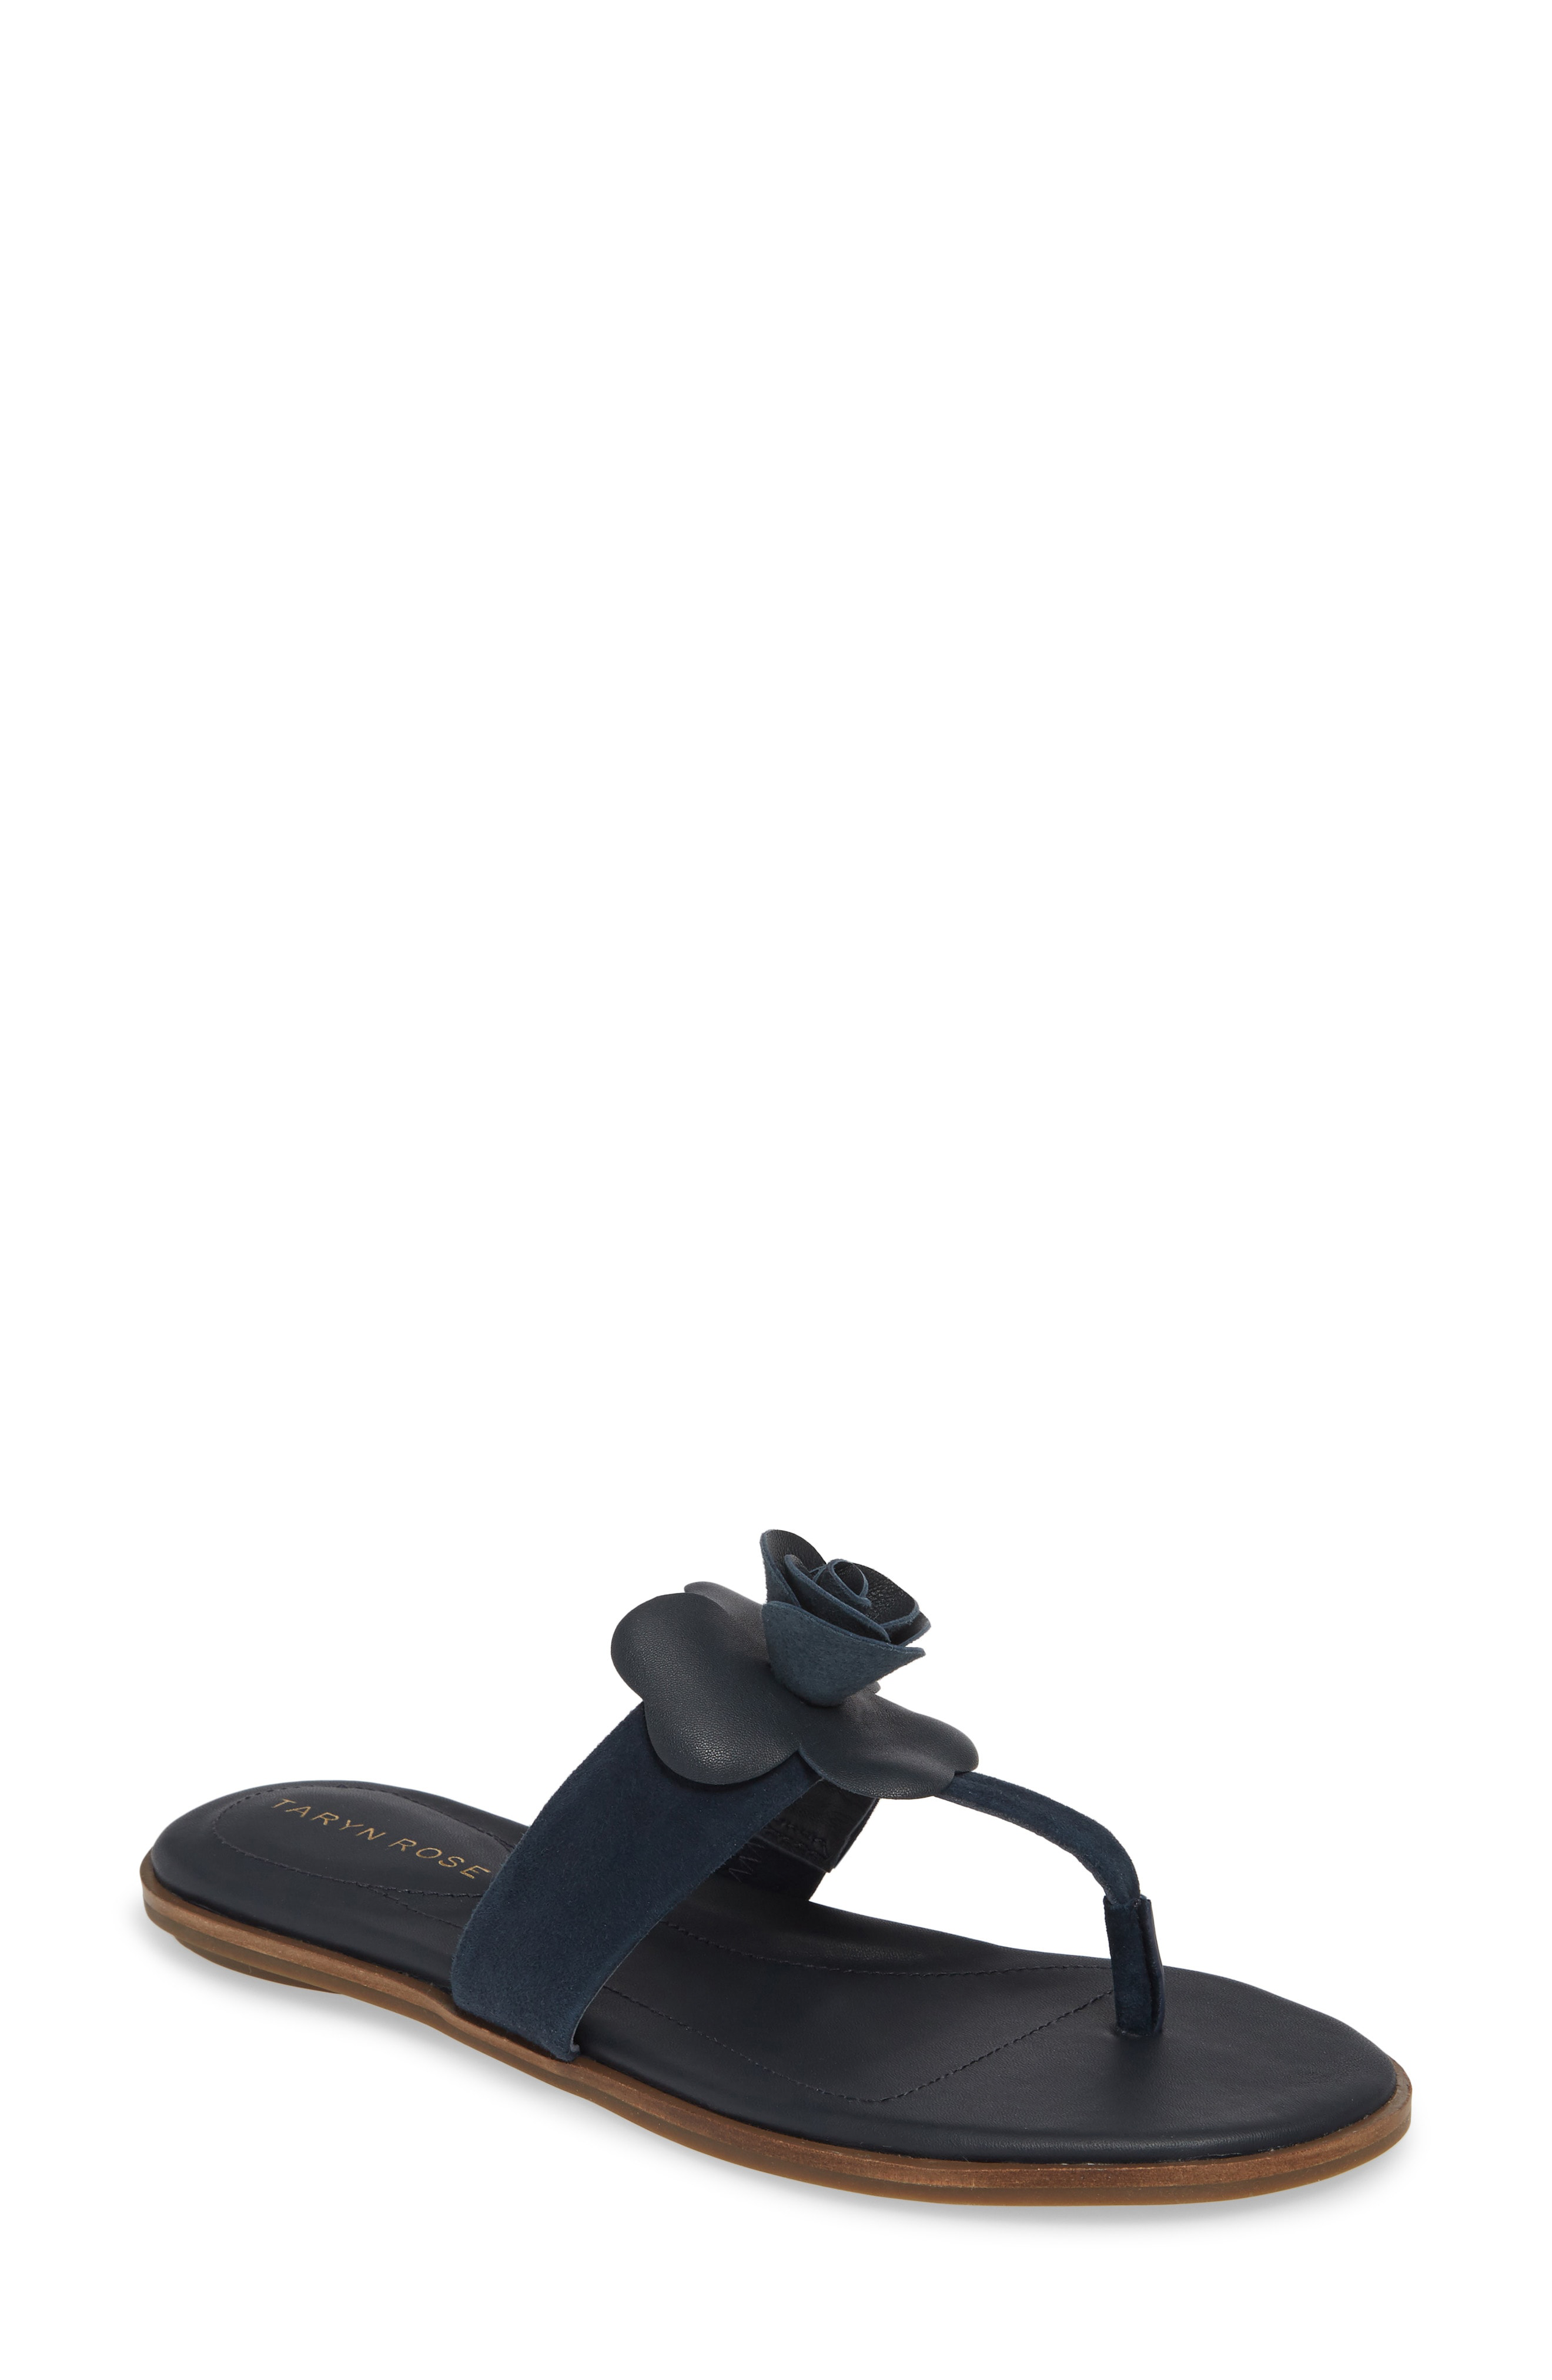 dcb014eea9e6 A floral accent adds a pretty flourish to this minimalist flip-flop set on  a lightly cushioned footbed. Style Name  Taryn Rose Kaori Flip Flop (Women).